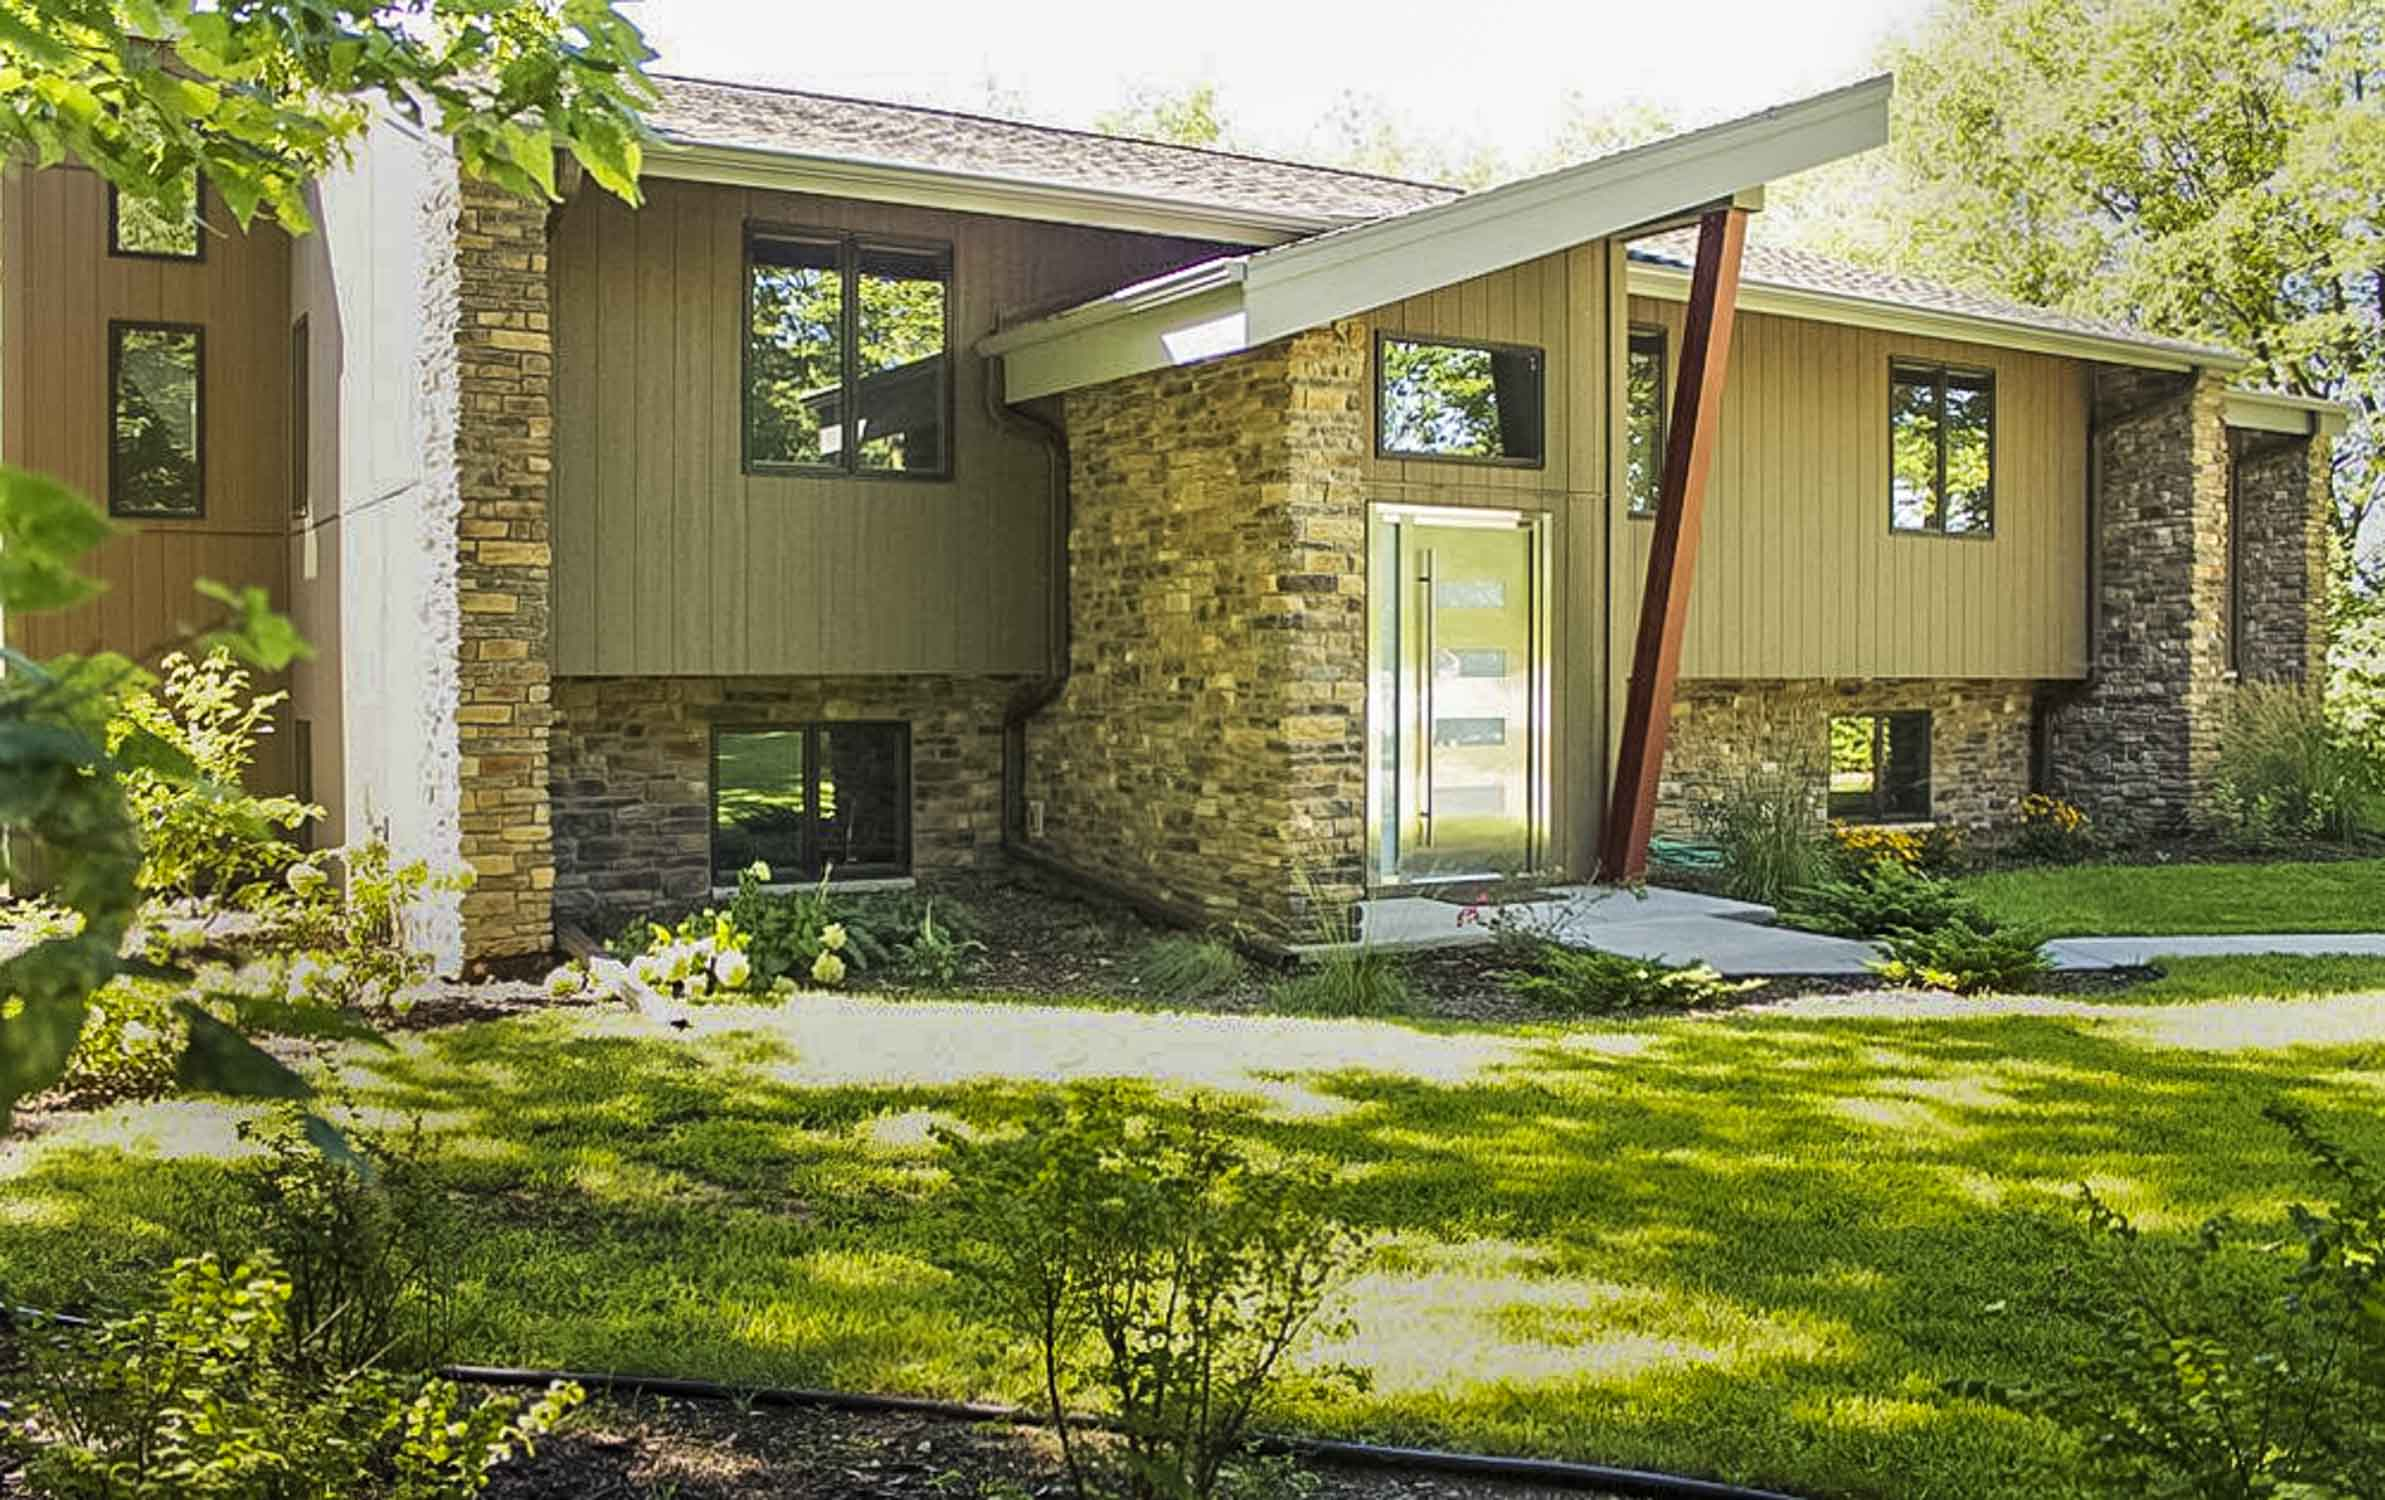 Remodeling Tips For A Ranch Style House Built in the 1970's ... on rambler house plans, rambler house curb appeal, rambler house with rock, ramblers with bonus room house design,